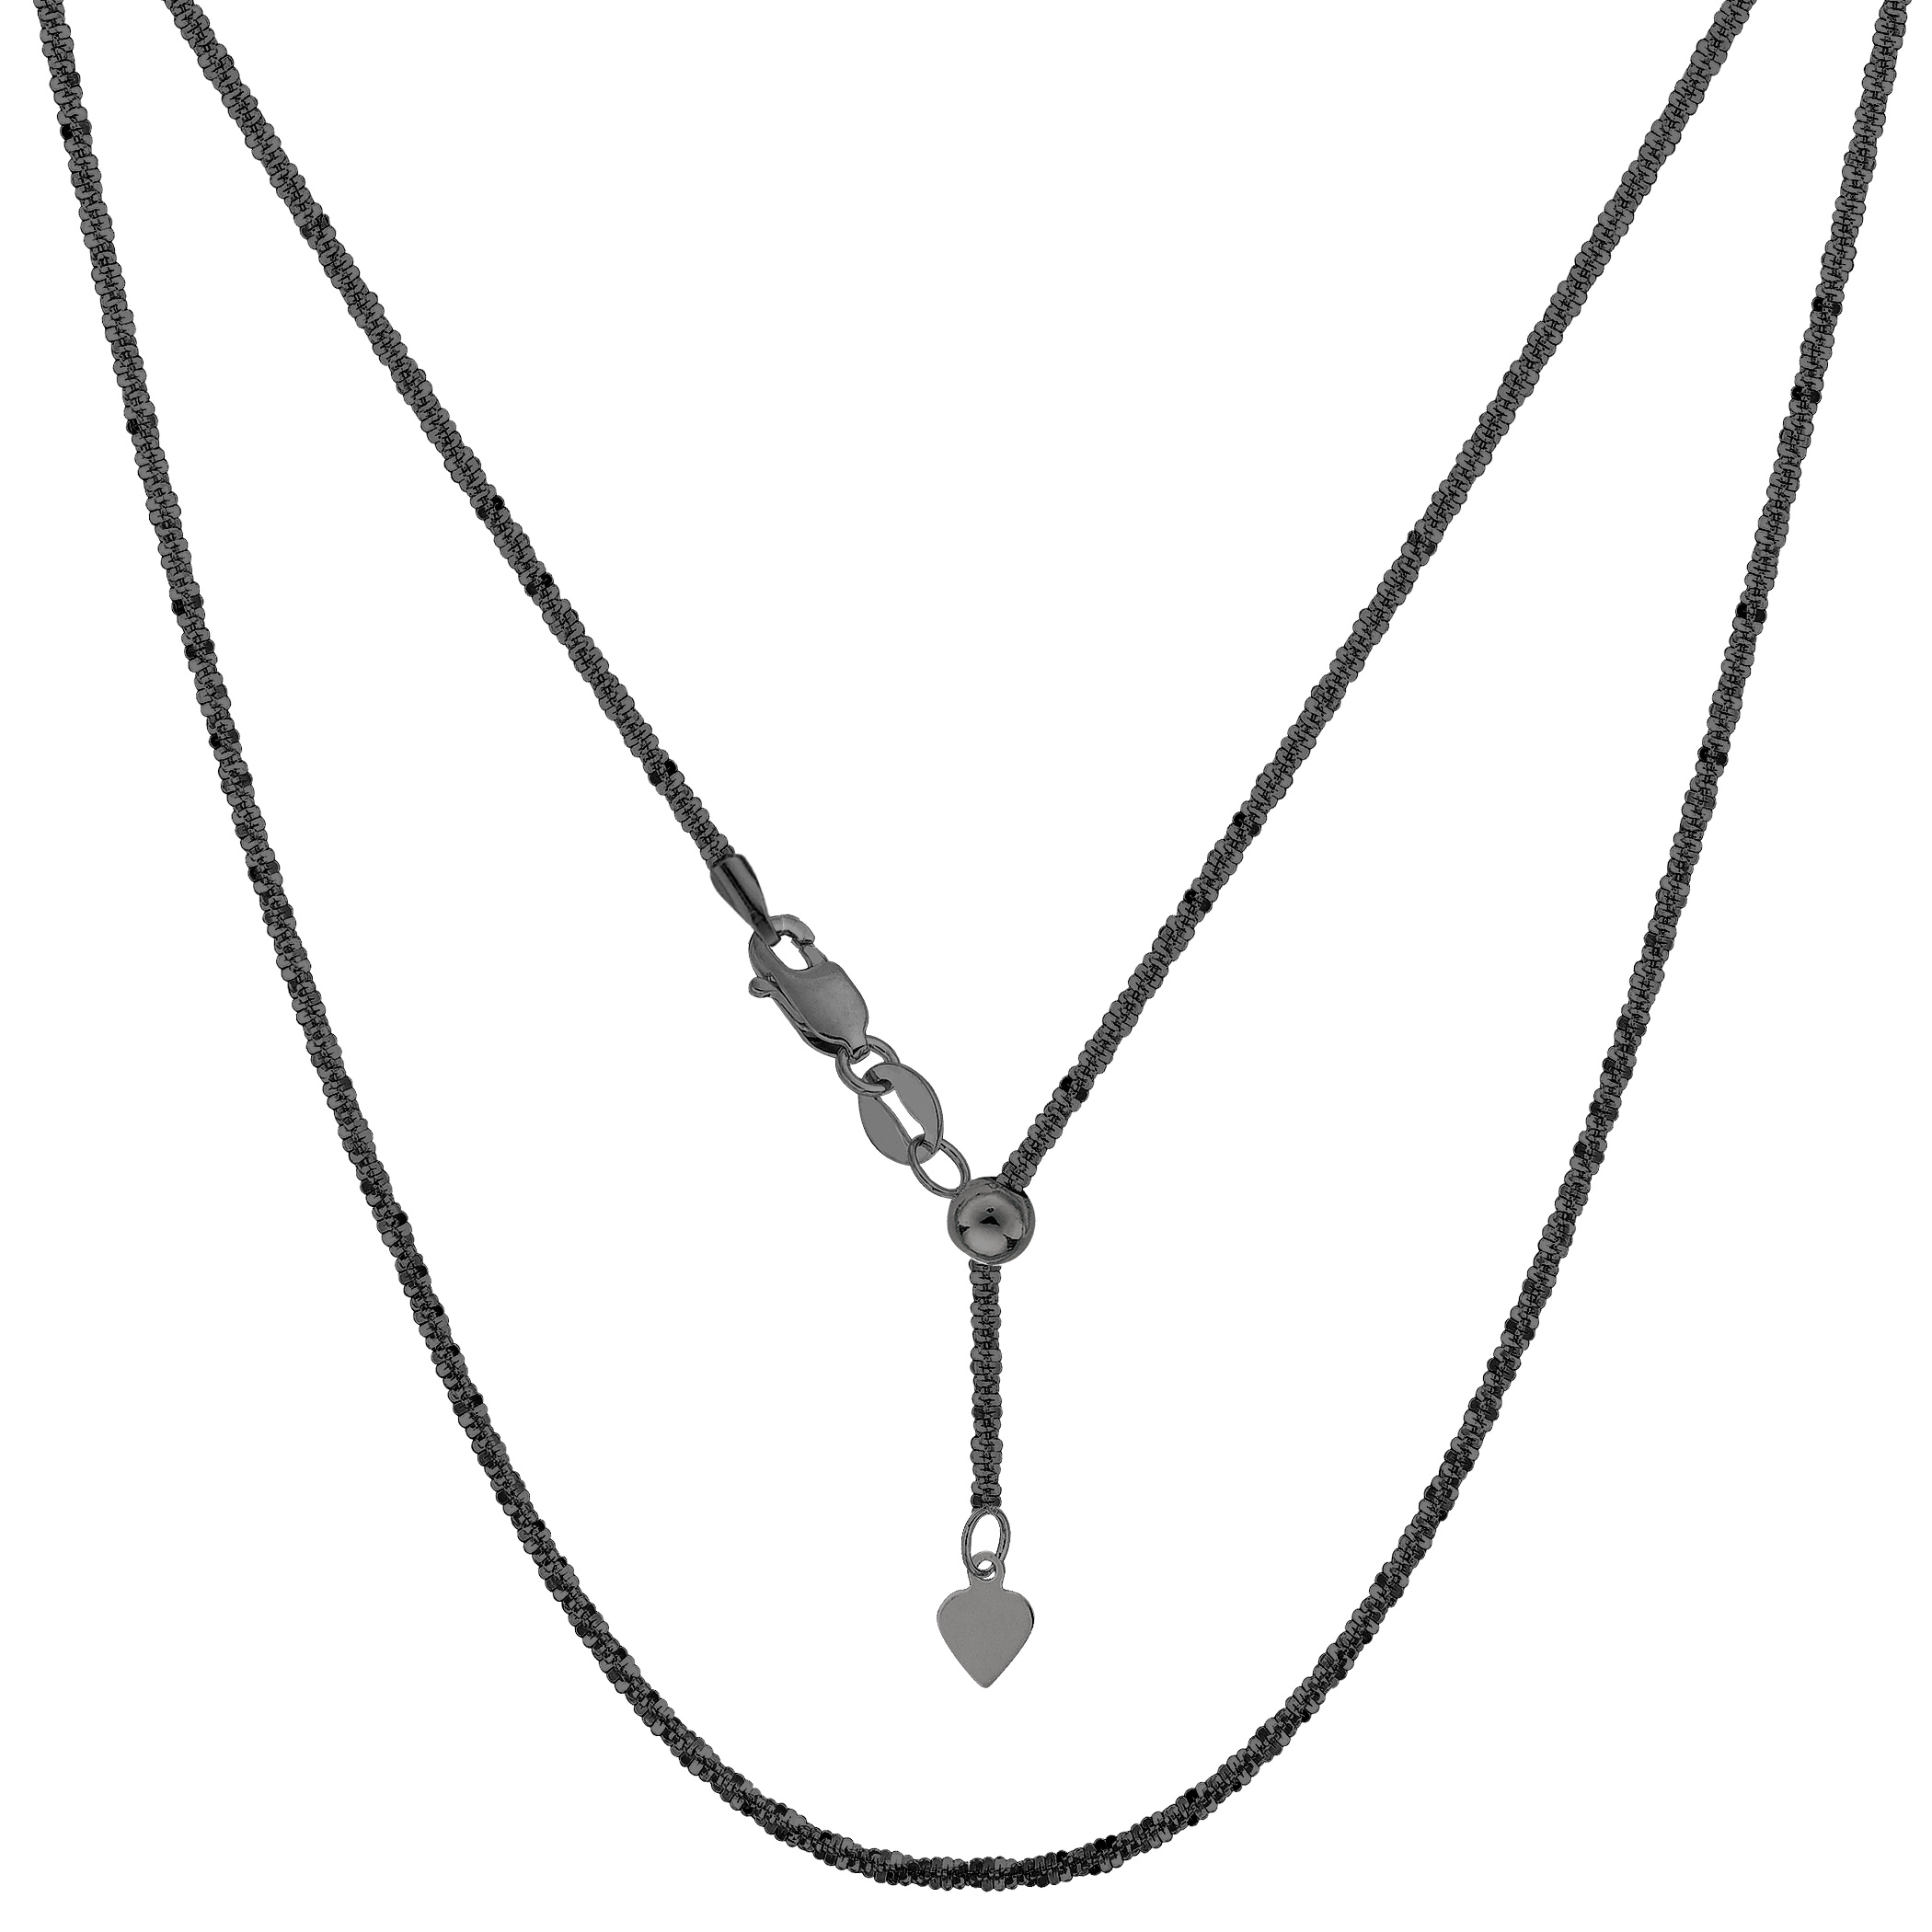 Sterling Silver Black Ruthenium Plated 22  Sliding Adjustable Sparkle Chain Necklace, 1.5mm Using it by itself or combining it with charms and pendants, this 22 inch long adjustable sparkle style chain is a perfect addition to any jewelry fashionista collection. This Sterling Silver chain is black Ruthenium plated to a get that dark antique look.